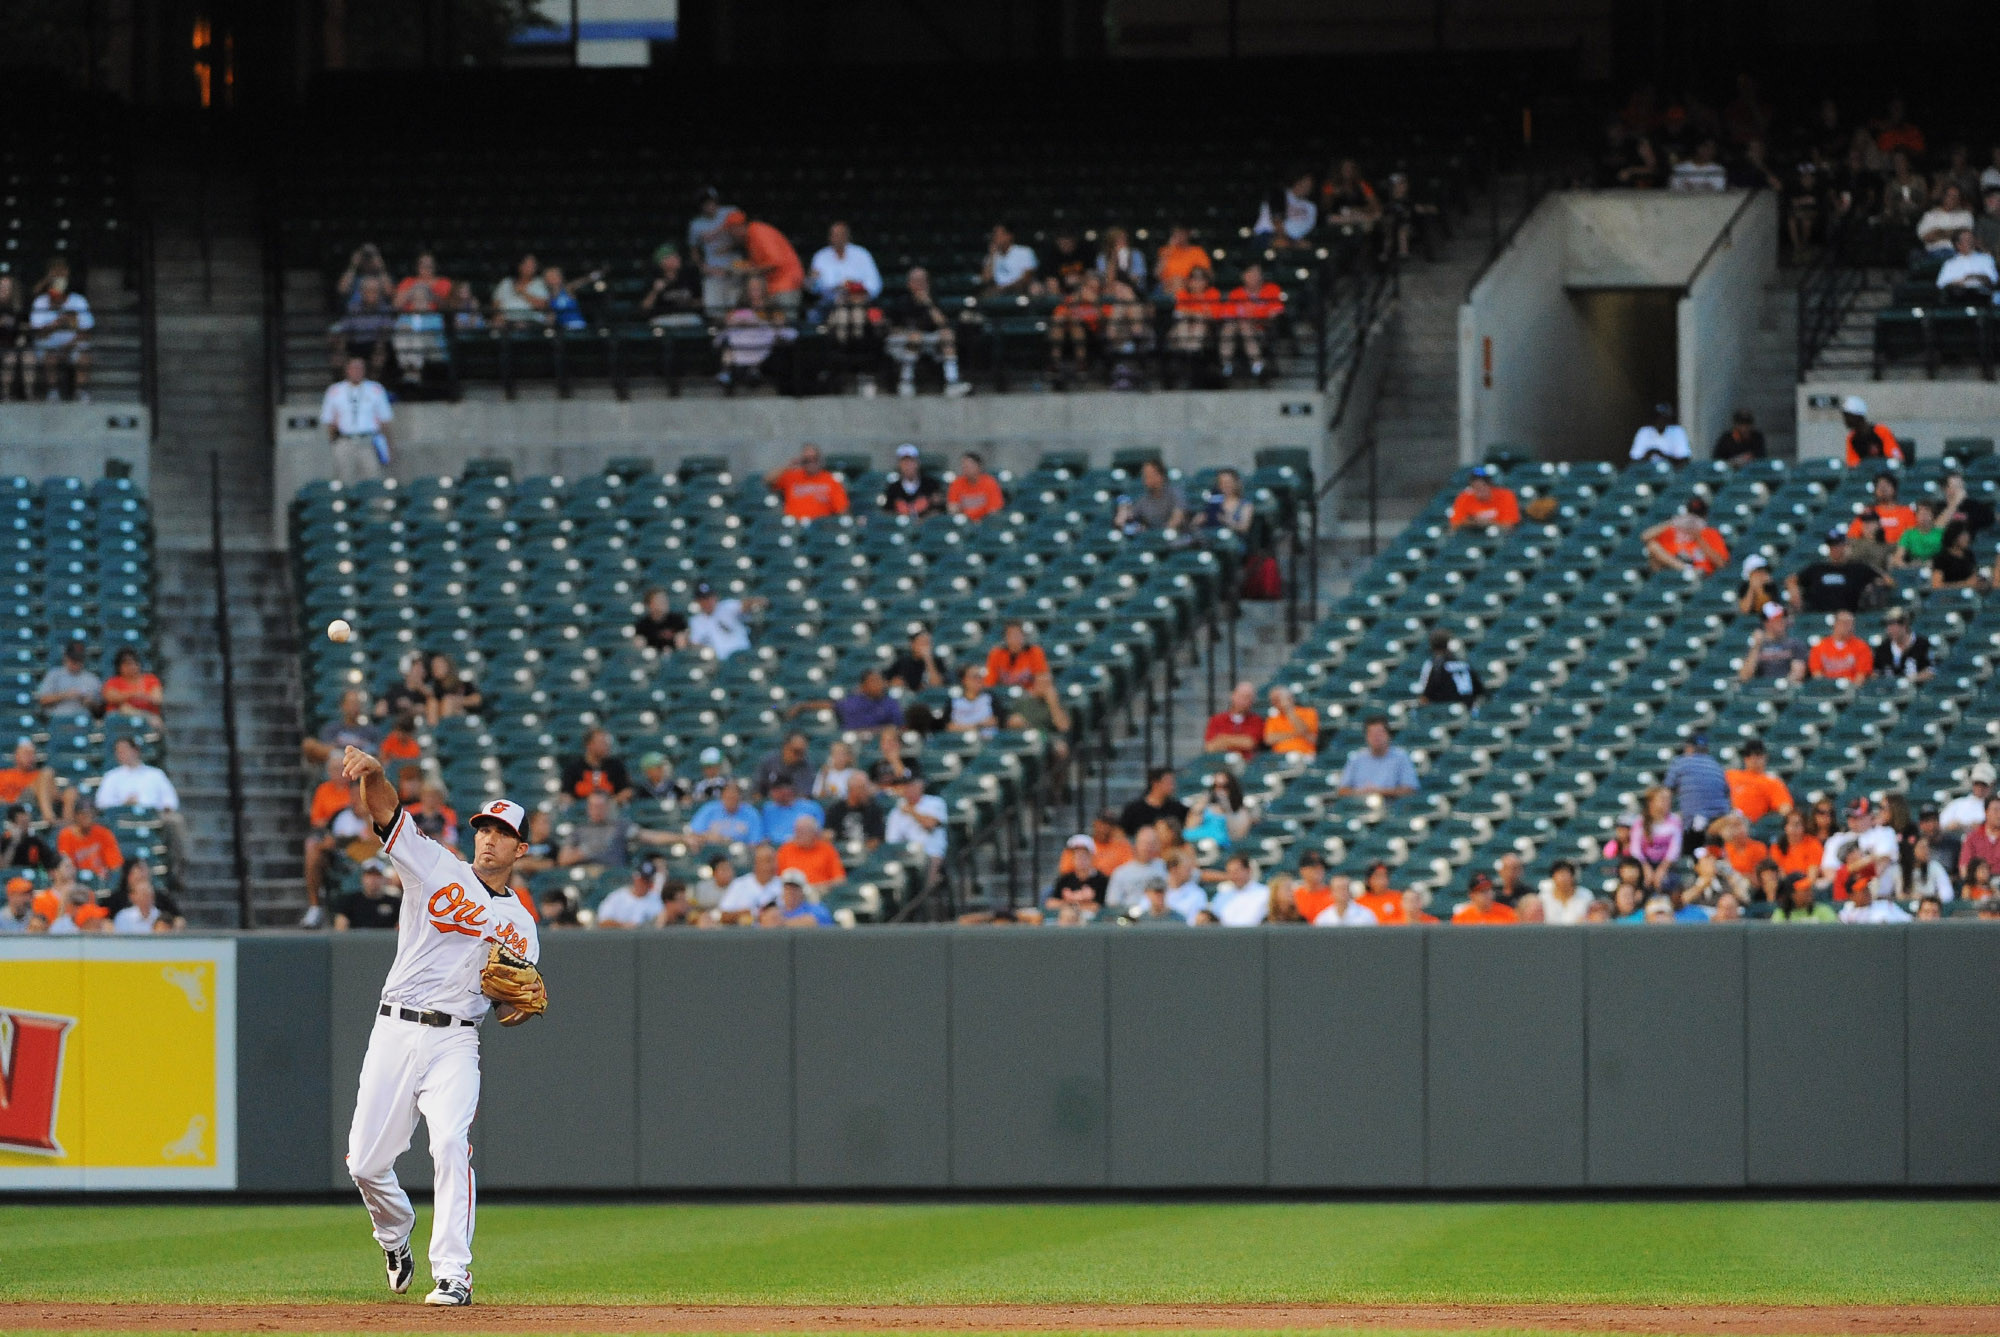 Orioles shortstop J.J. Hardy makes this throw to first in front of a back-drop of empty seats Tuesday night. The announced attendance was 12,841.